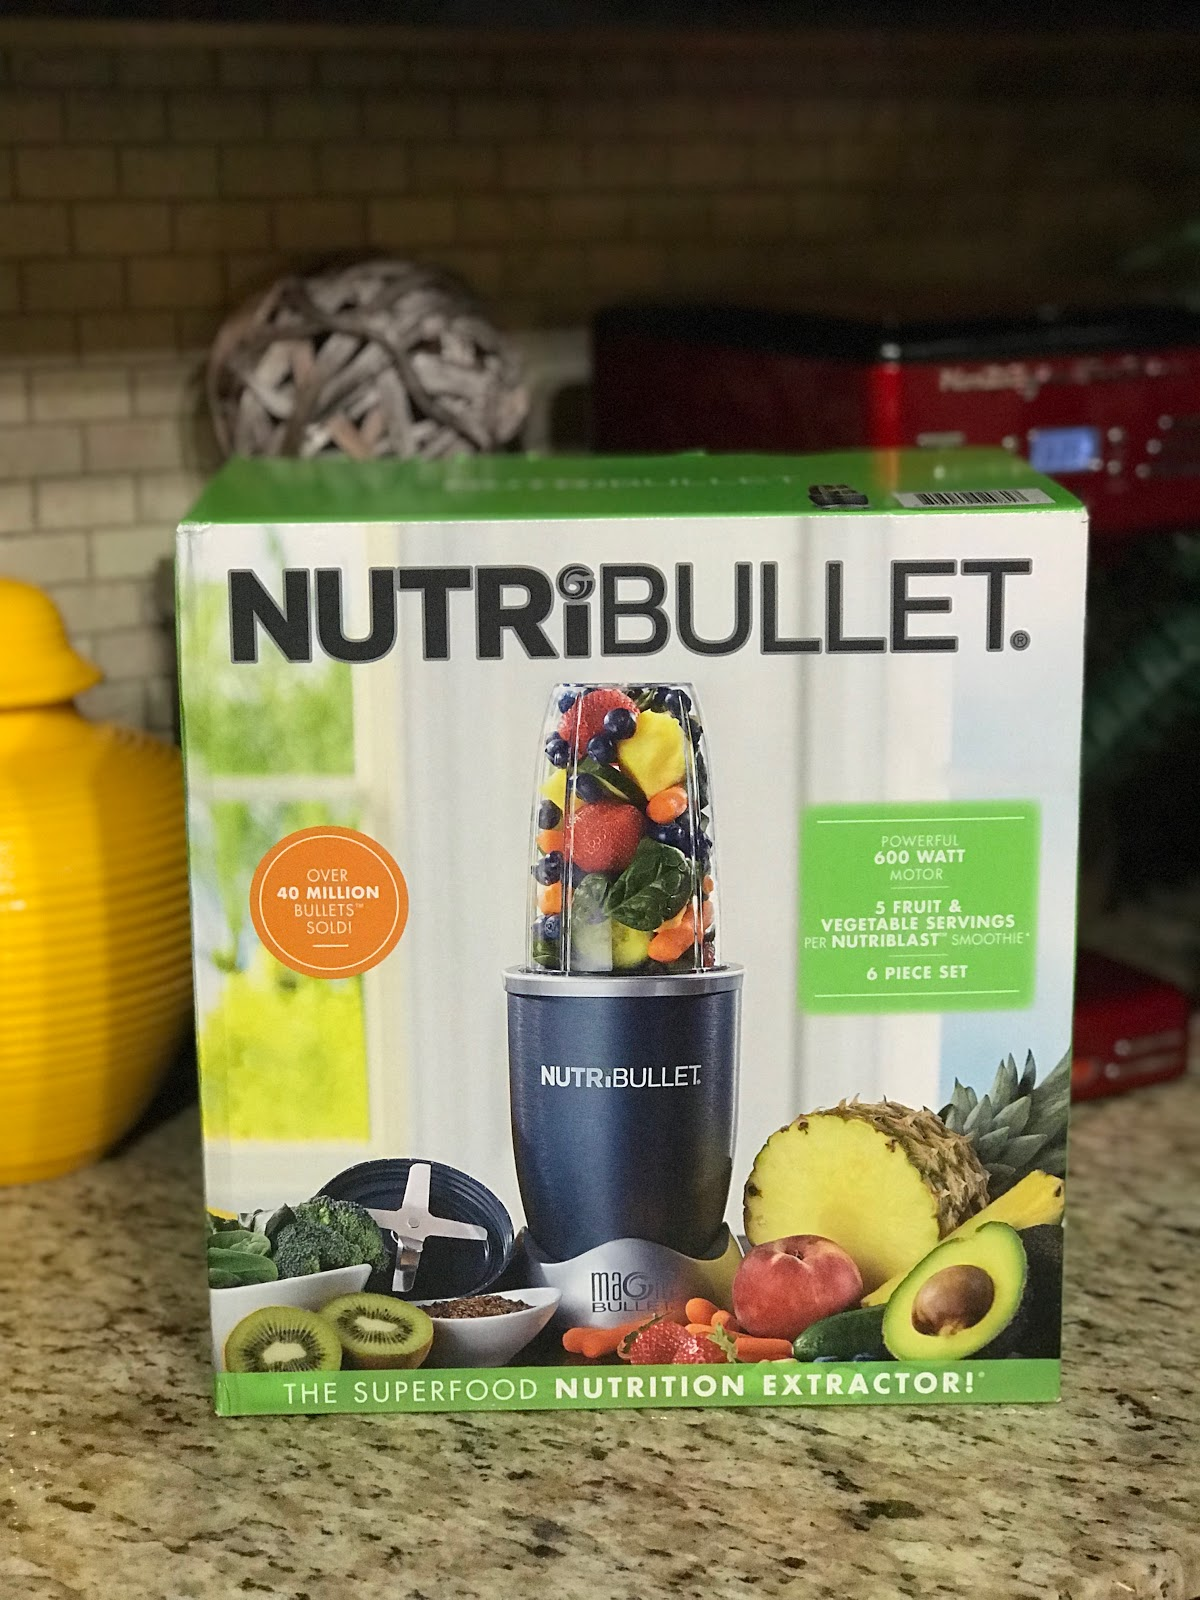 Image: NutriBullet purchased and shared in a haul on weekend bits and favorites. This item will be used for making veggie and fruit smoothies.